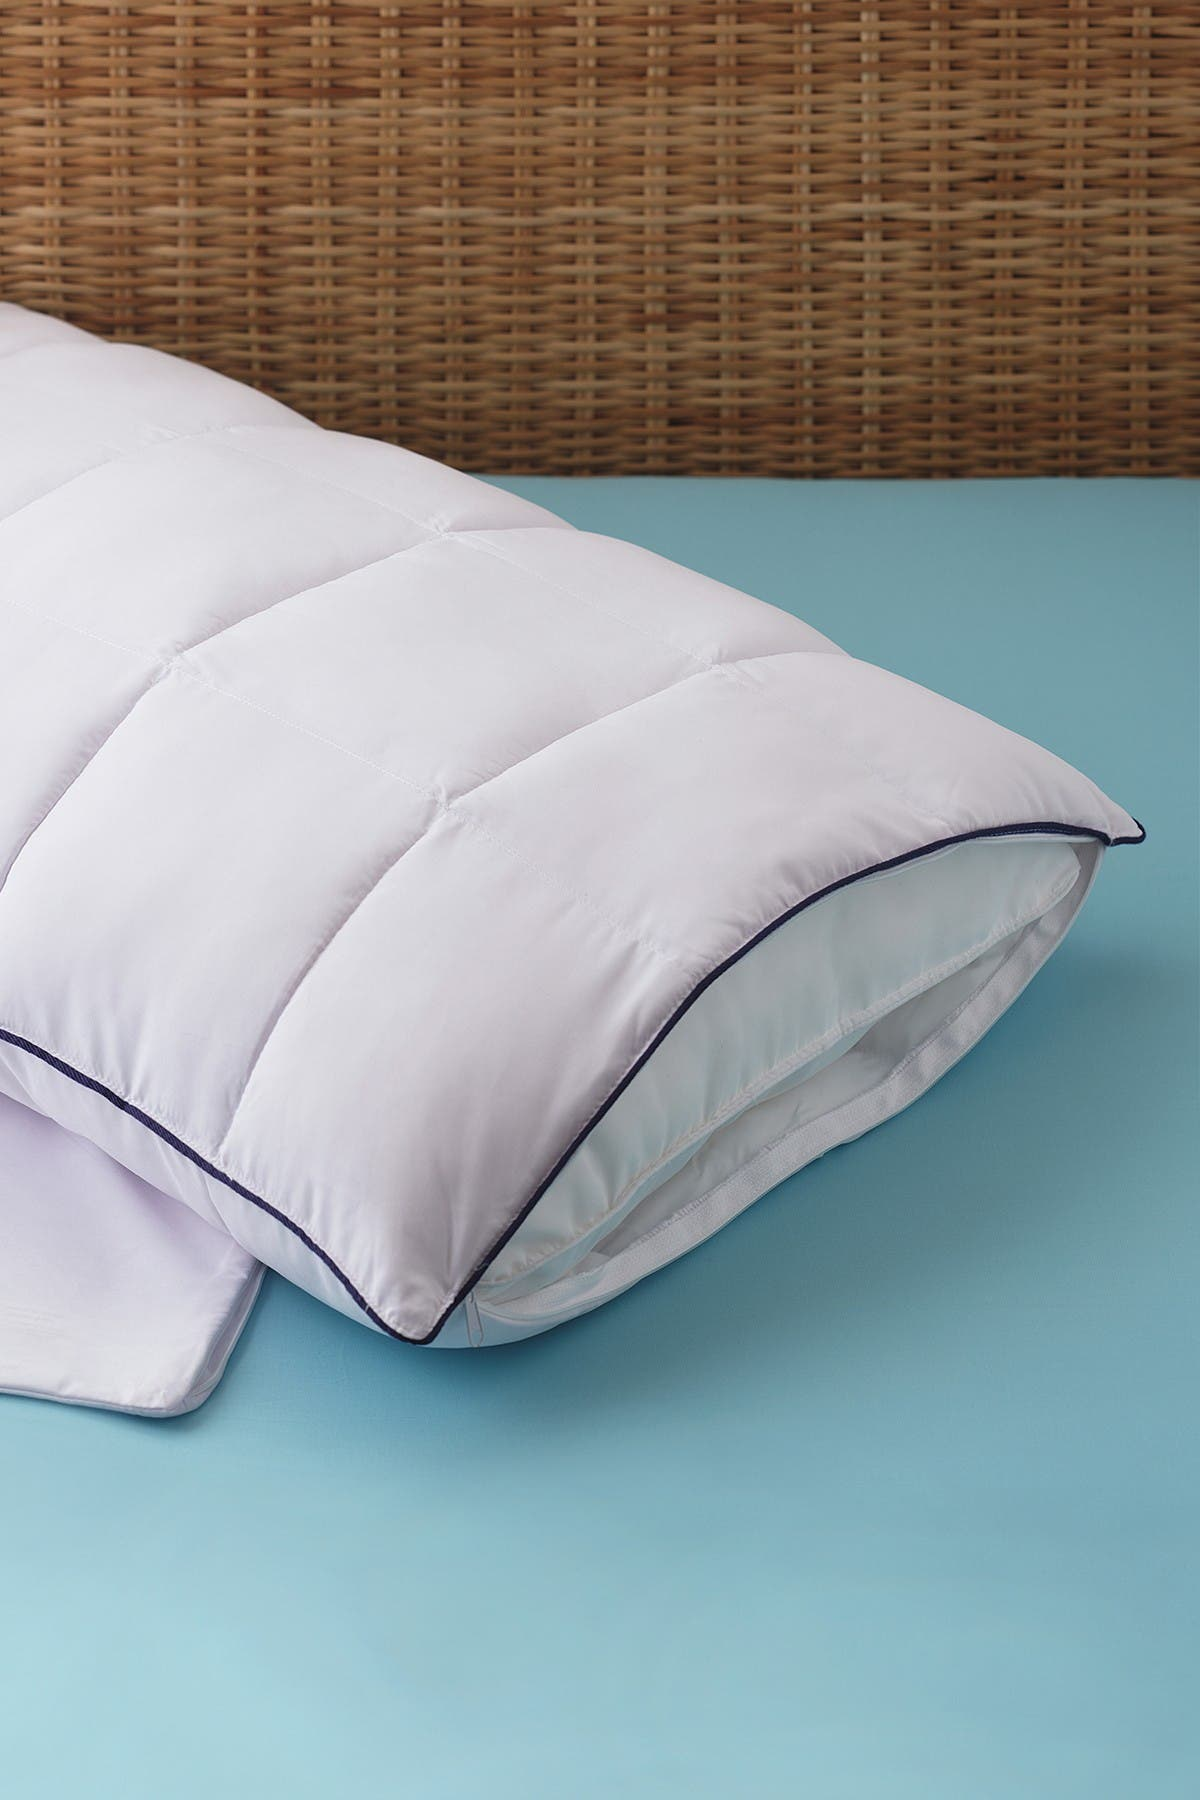 Image of Allied Home Premium MicronOne King Allergen Barrier 2-in-1 Pillow Enhancer and Travel Pillow